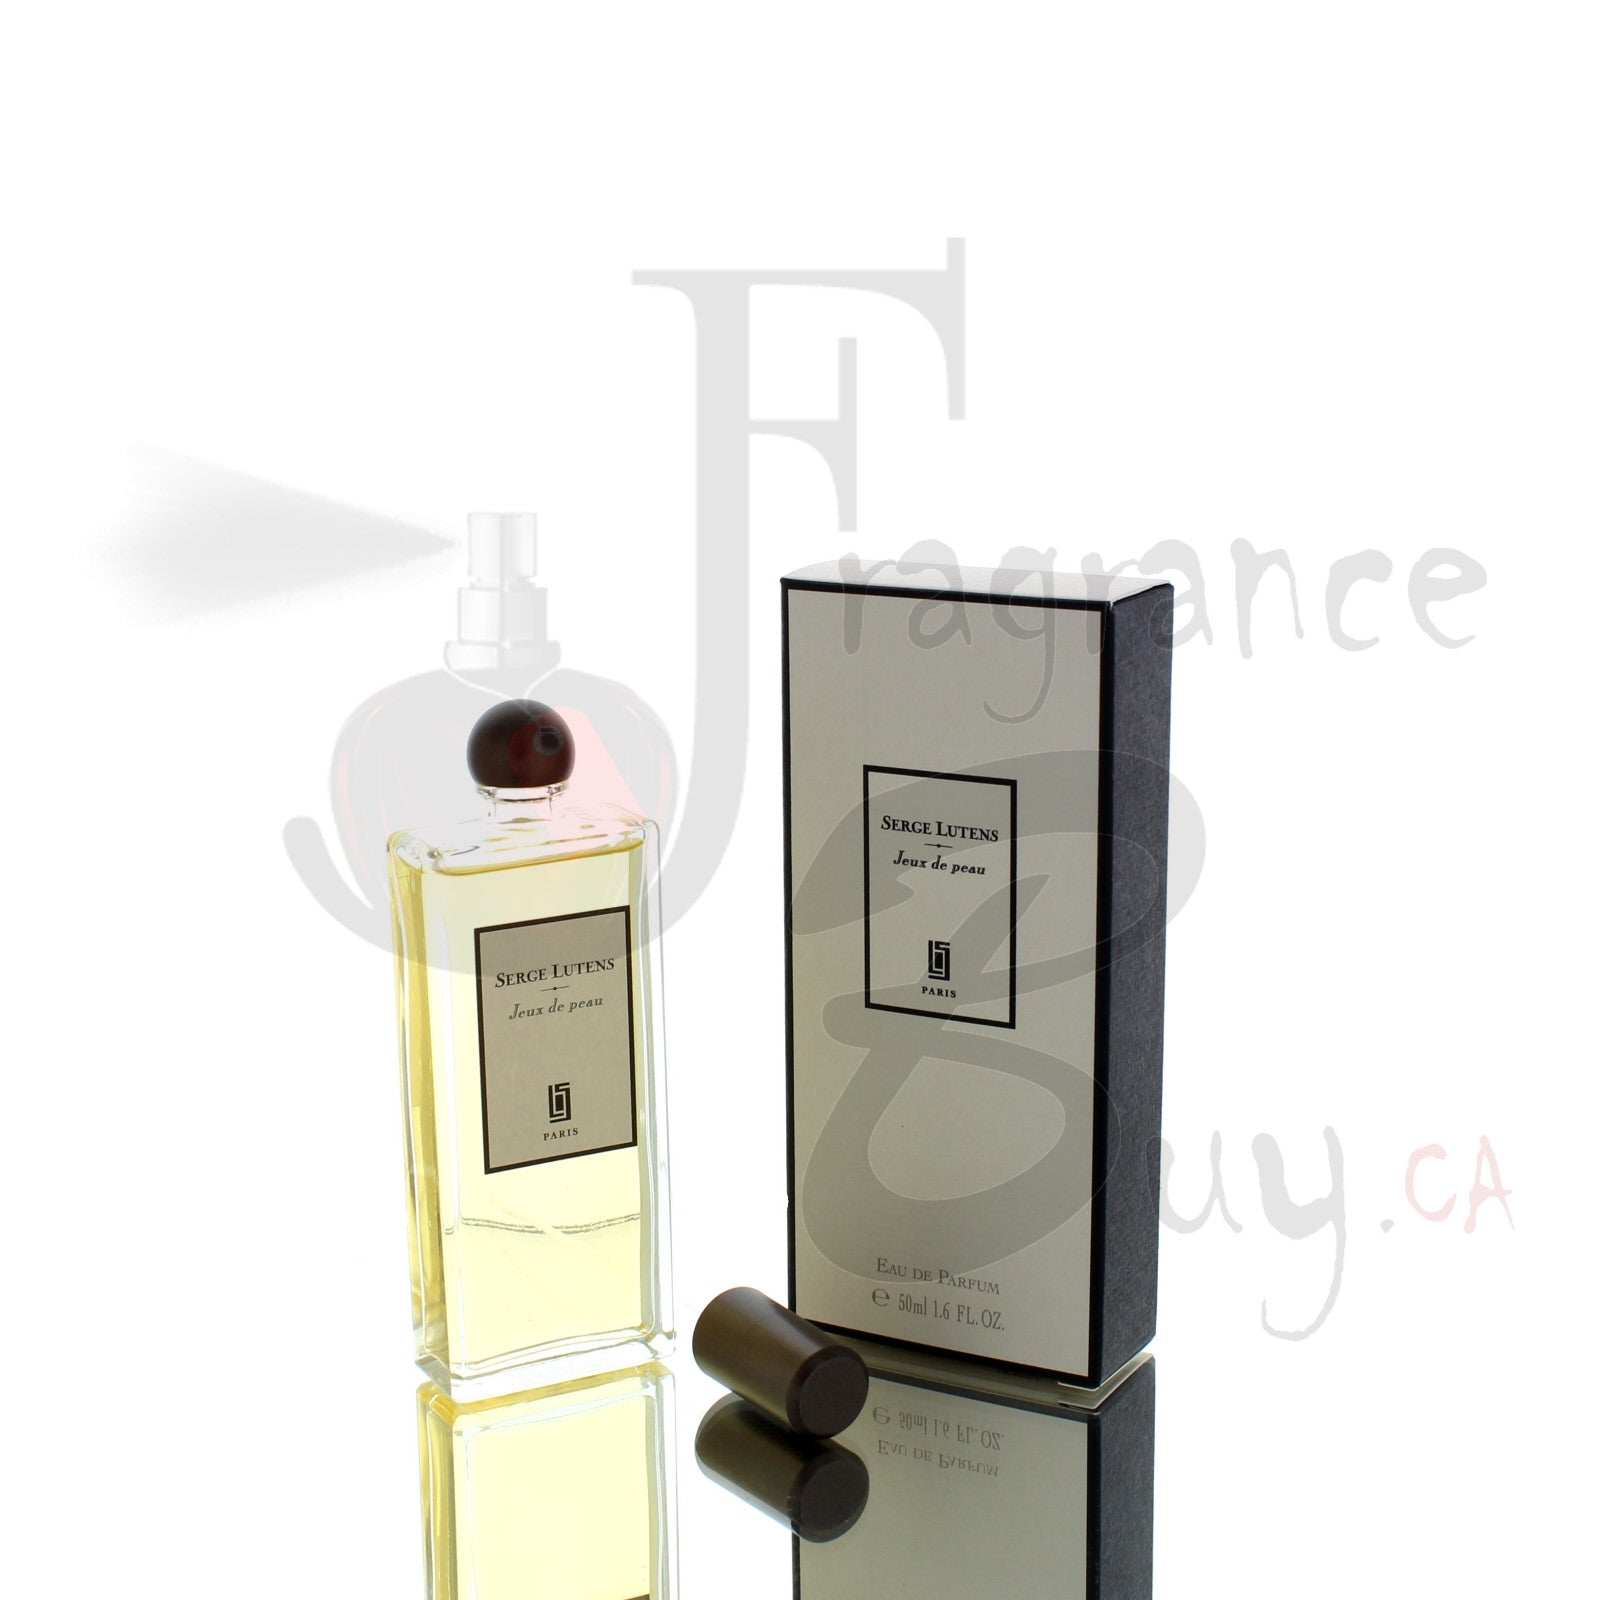 Serge Lutens Jeux de Peau For Man/Woman